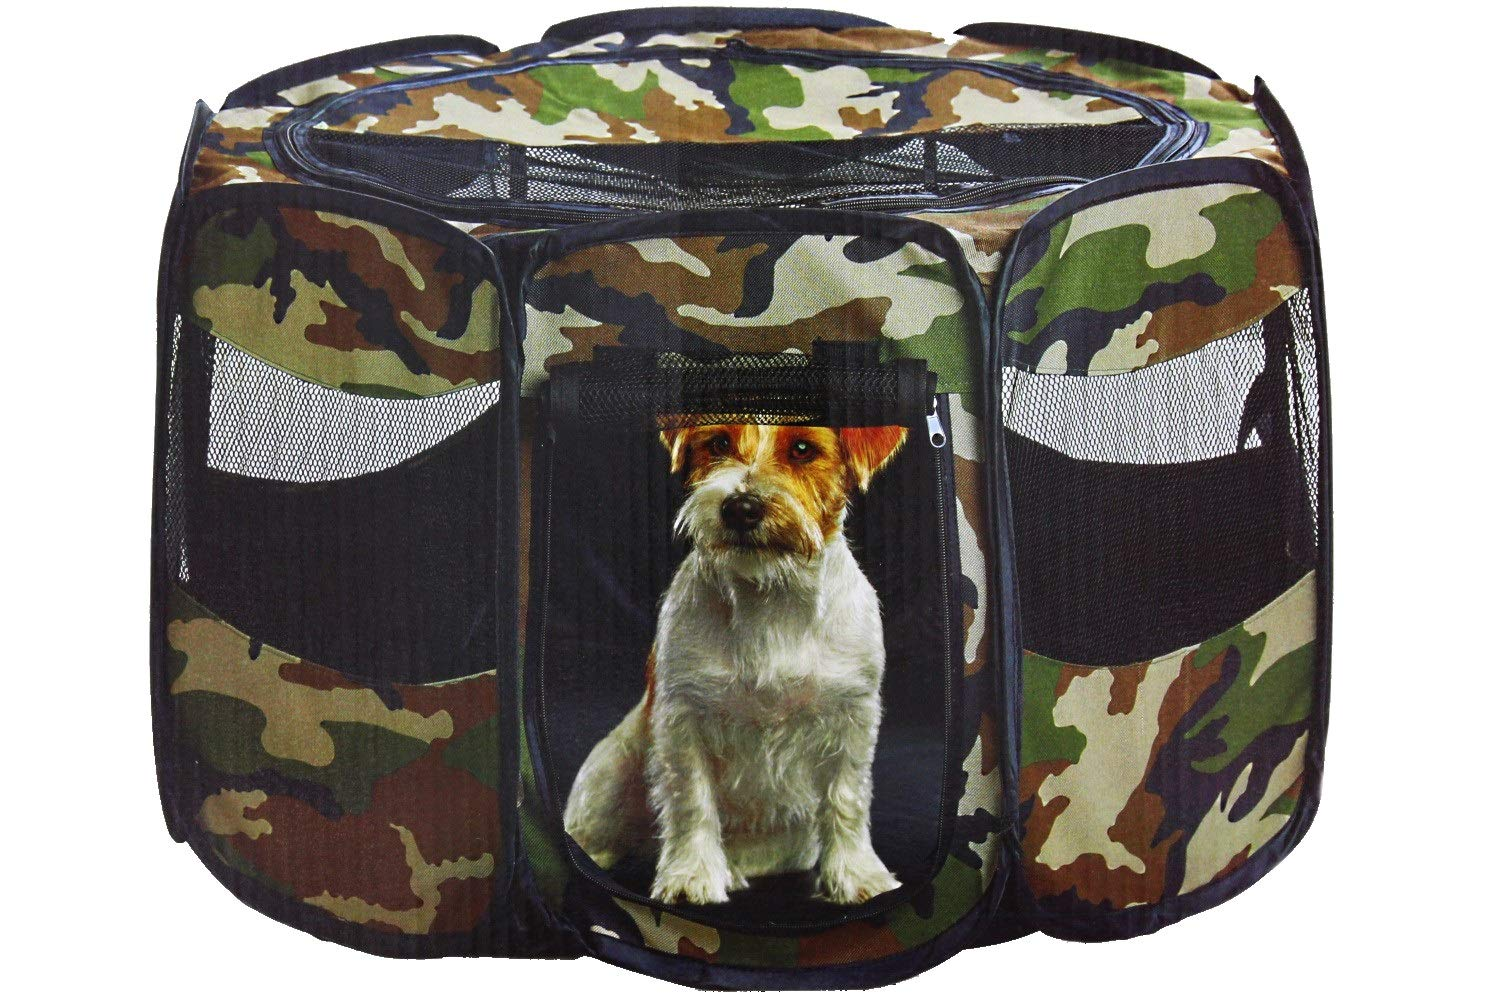 Etna Camouflage Portable Pet Play Pen Keeps Pets Safe, Secure, Comfortable Indoors & Outdoors (Small)